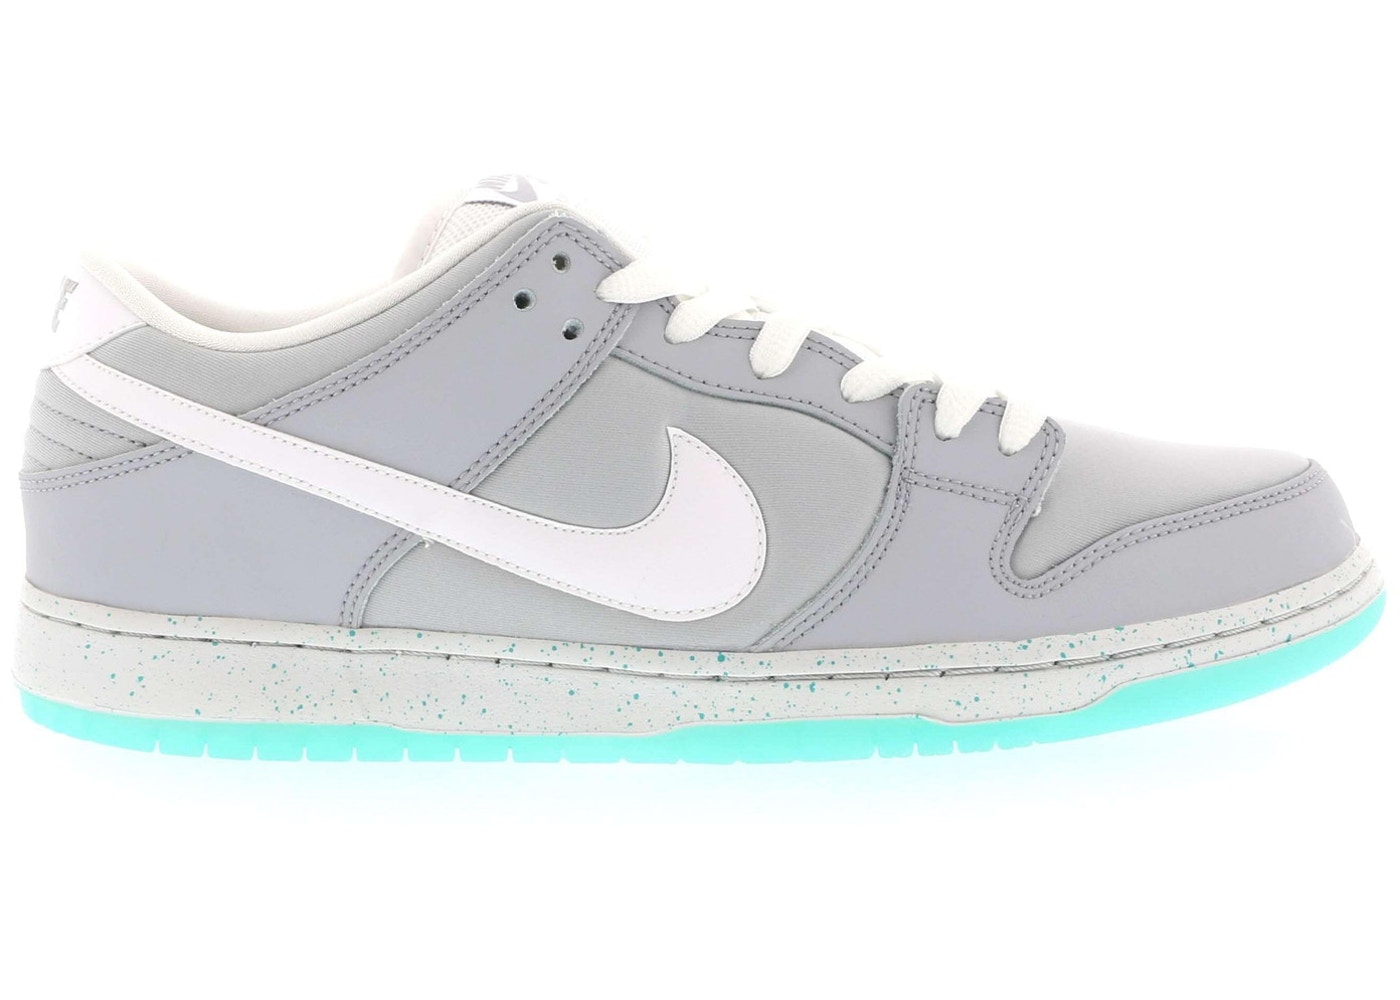 new style 0480c 74c72 Nike Dunk SB Low Marty McFly